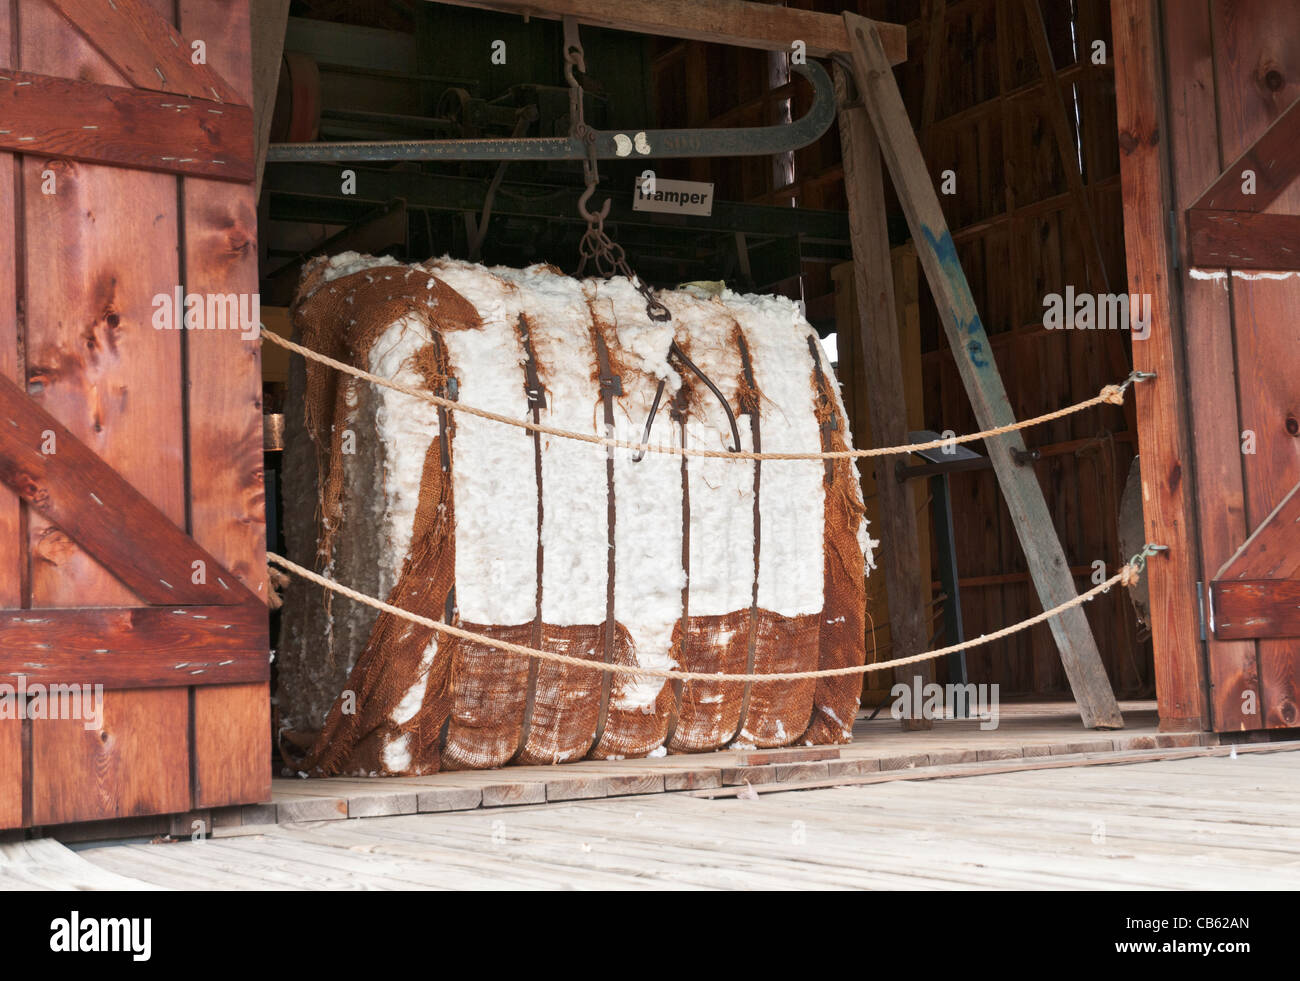 Alabama, Montgomery, Old Alabama Town, living history museum, cotton gin circa 1900, cotton bale - Stock Image